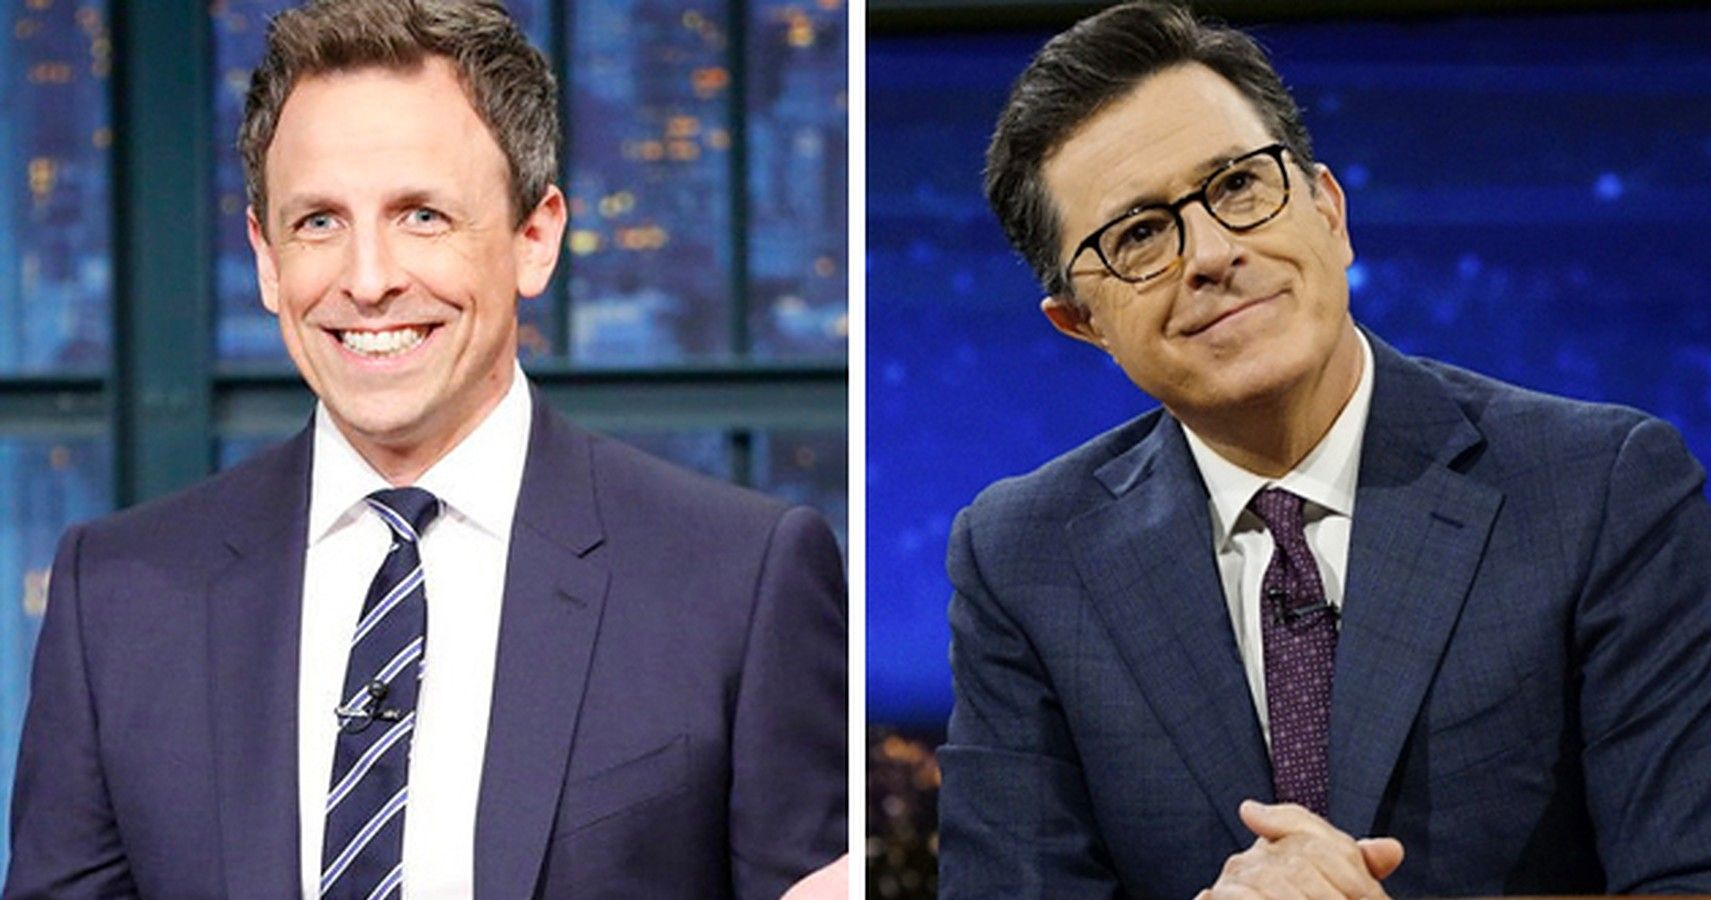 15 Best Talk Show Hosts From US & UK